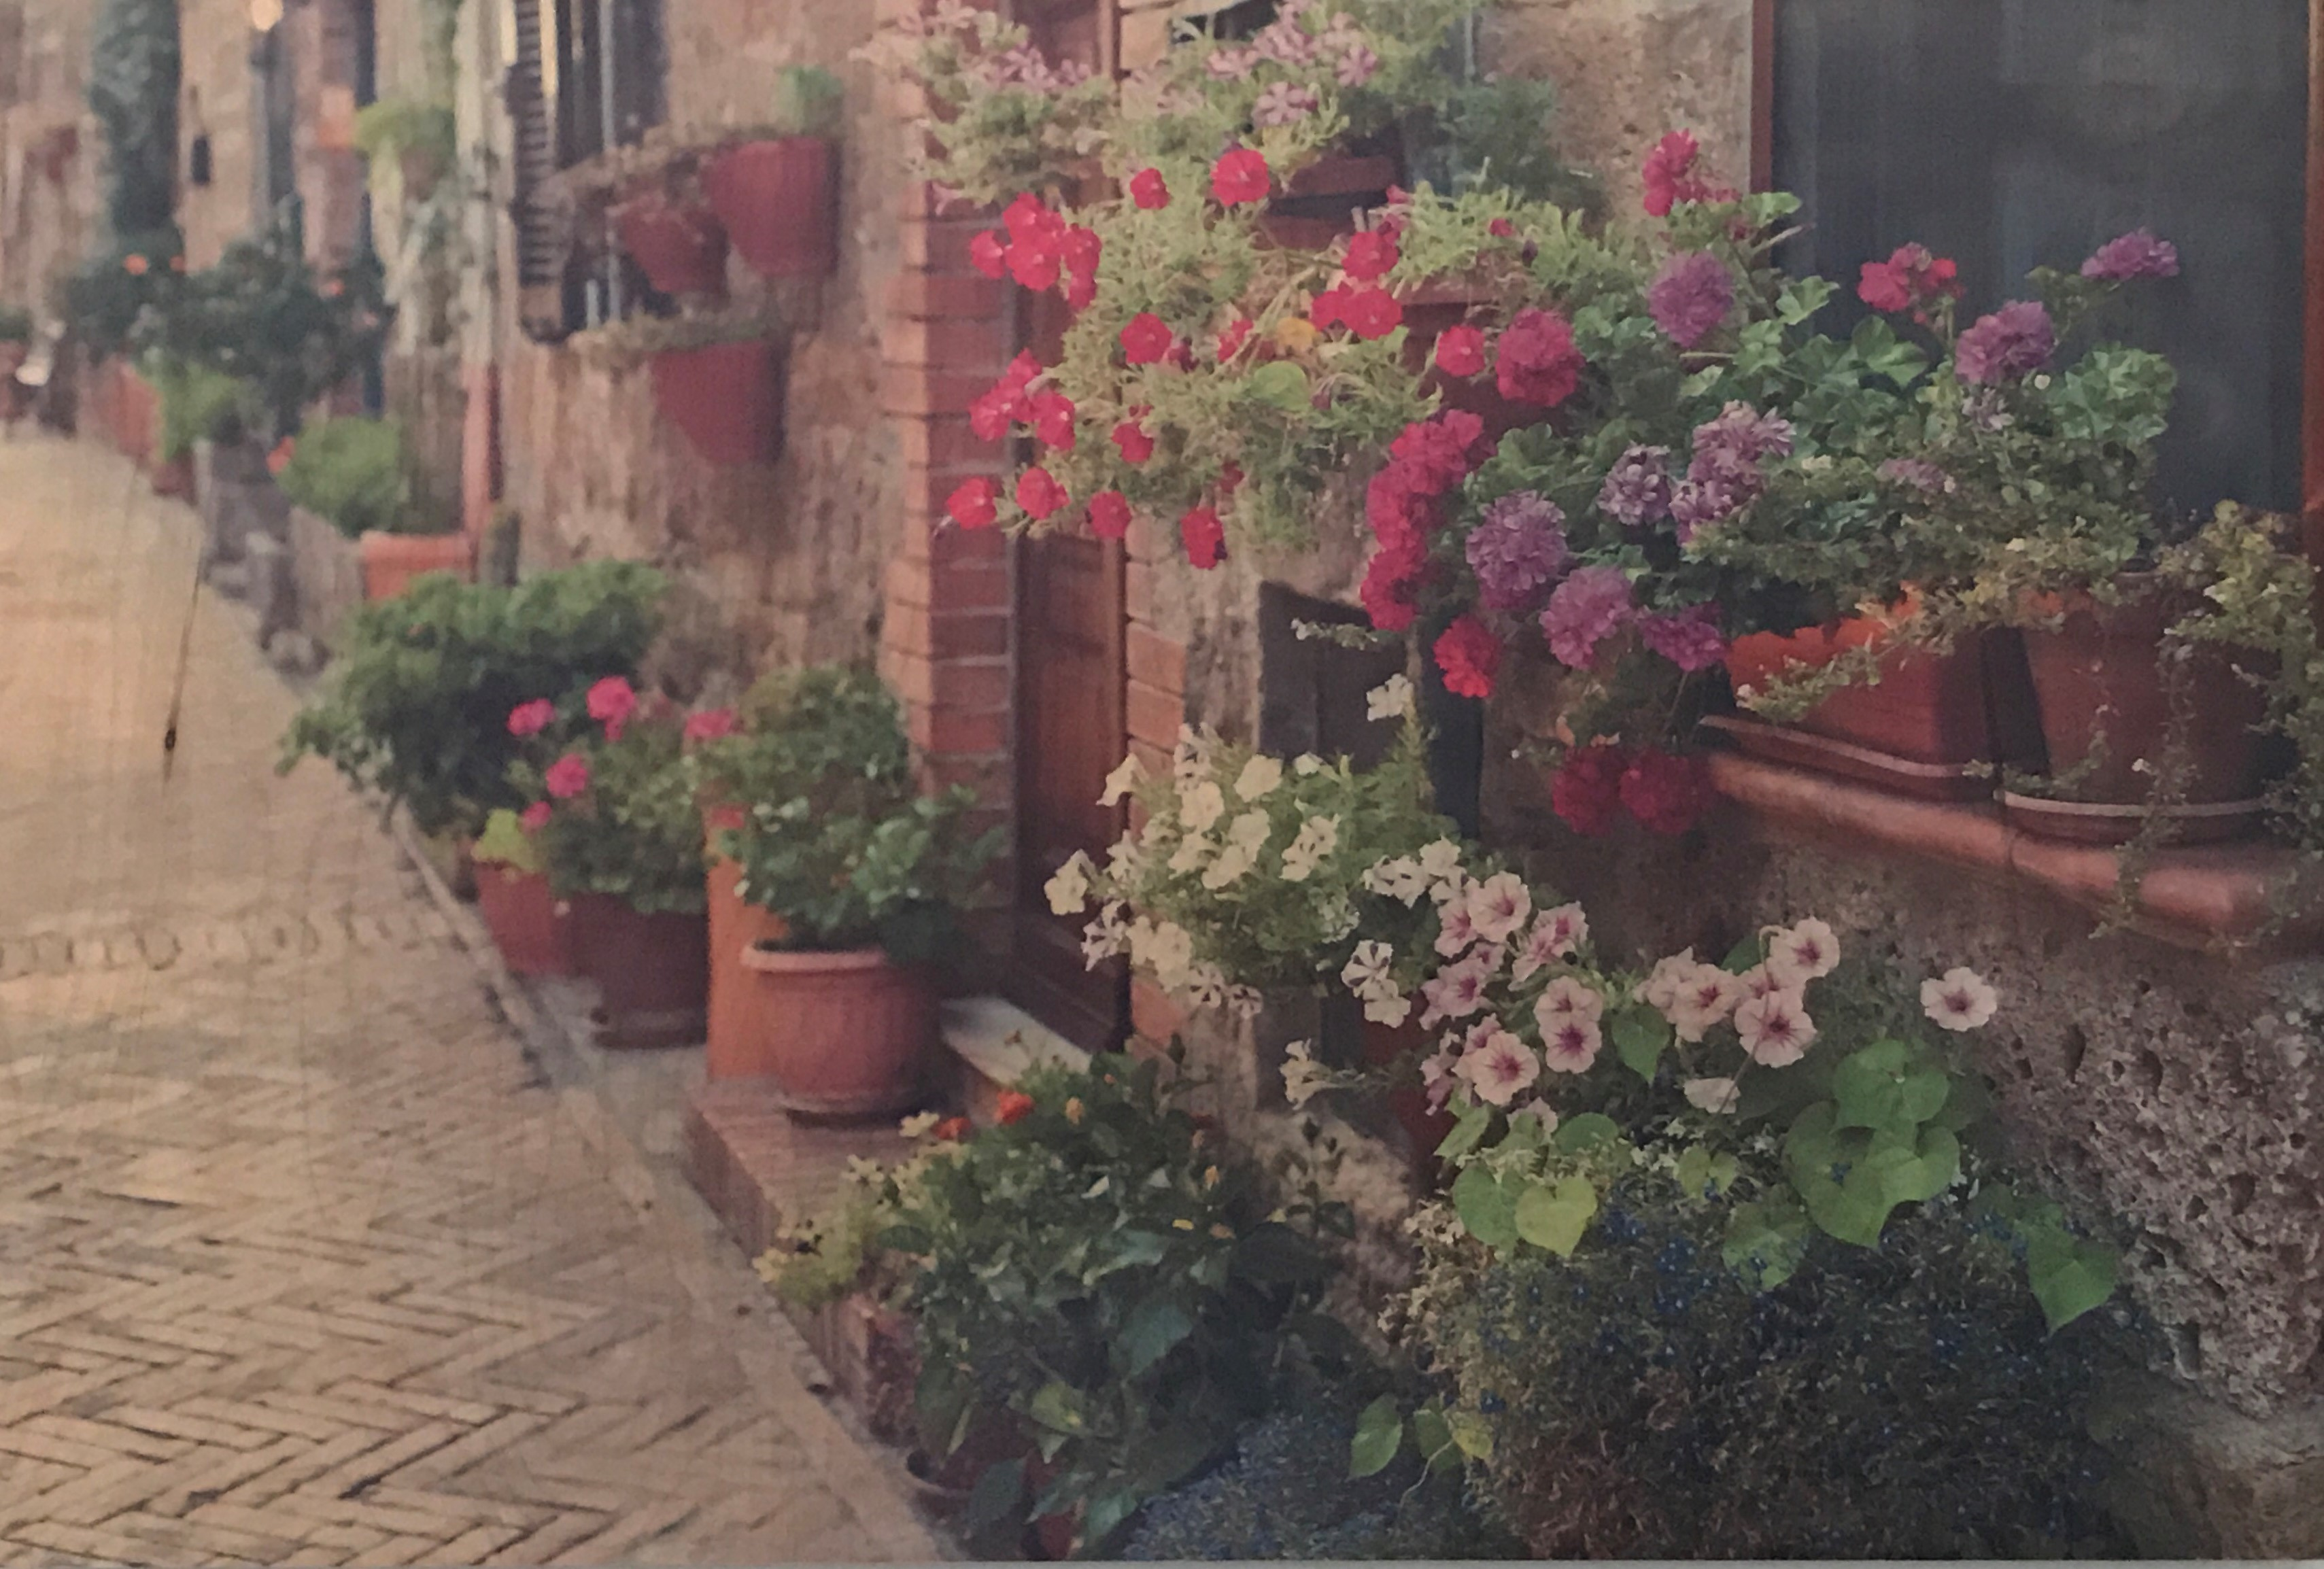 Amy Shuman, Flowers in Sovana, 2013, photograph on board